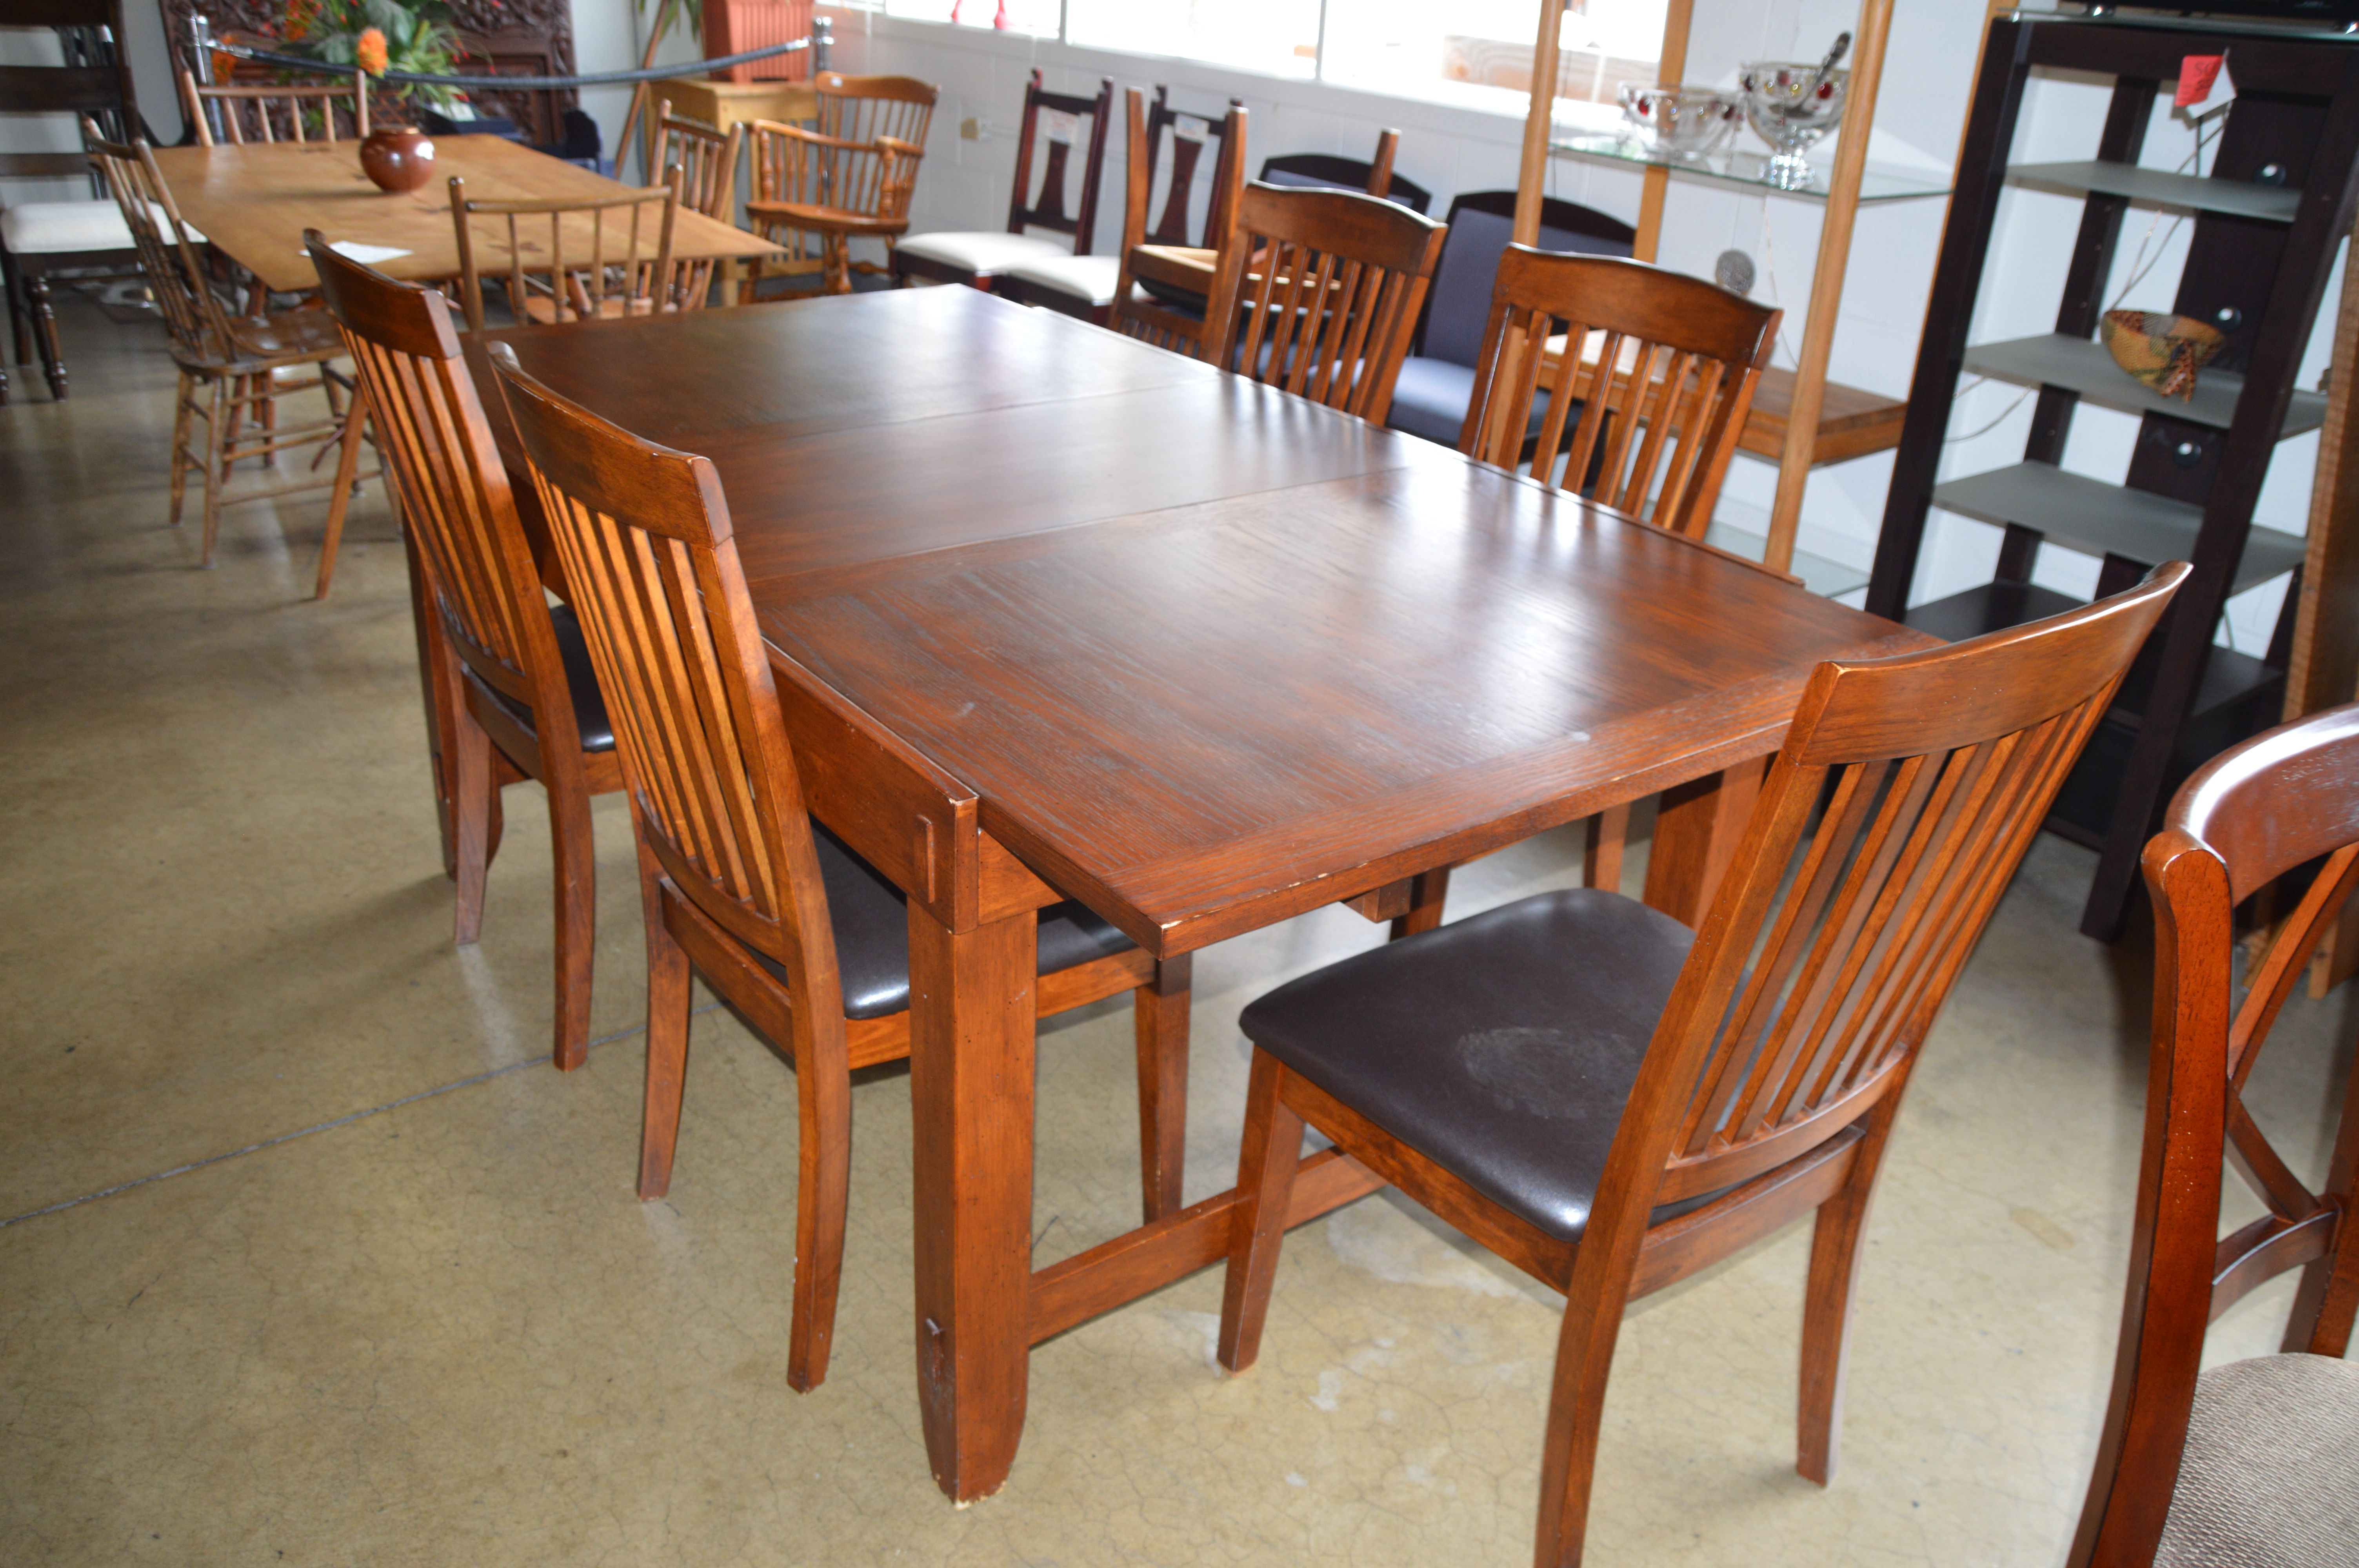 This Is A Beautiful Mission Style Table Leaf And 6 Chairs Dining Room Sets Bedroom Sets Home Decor